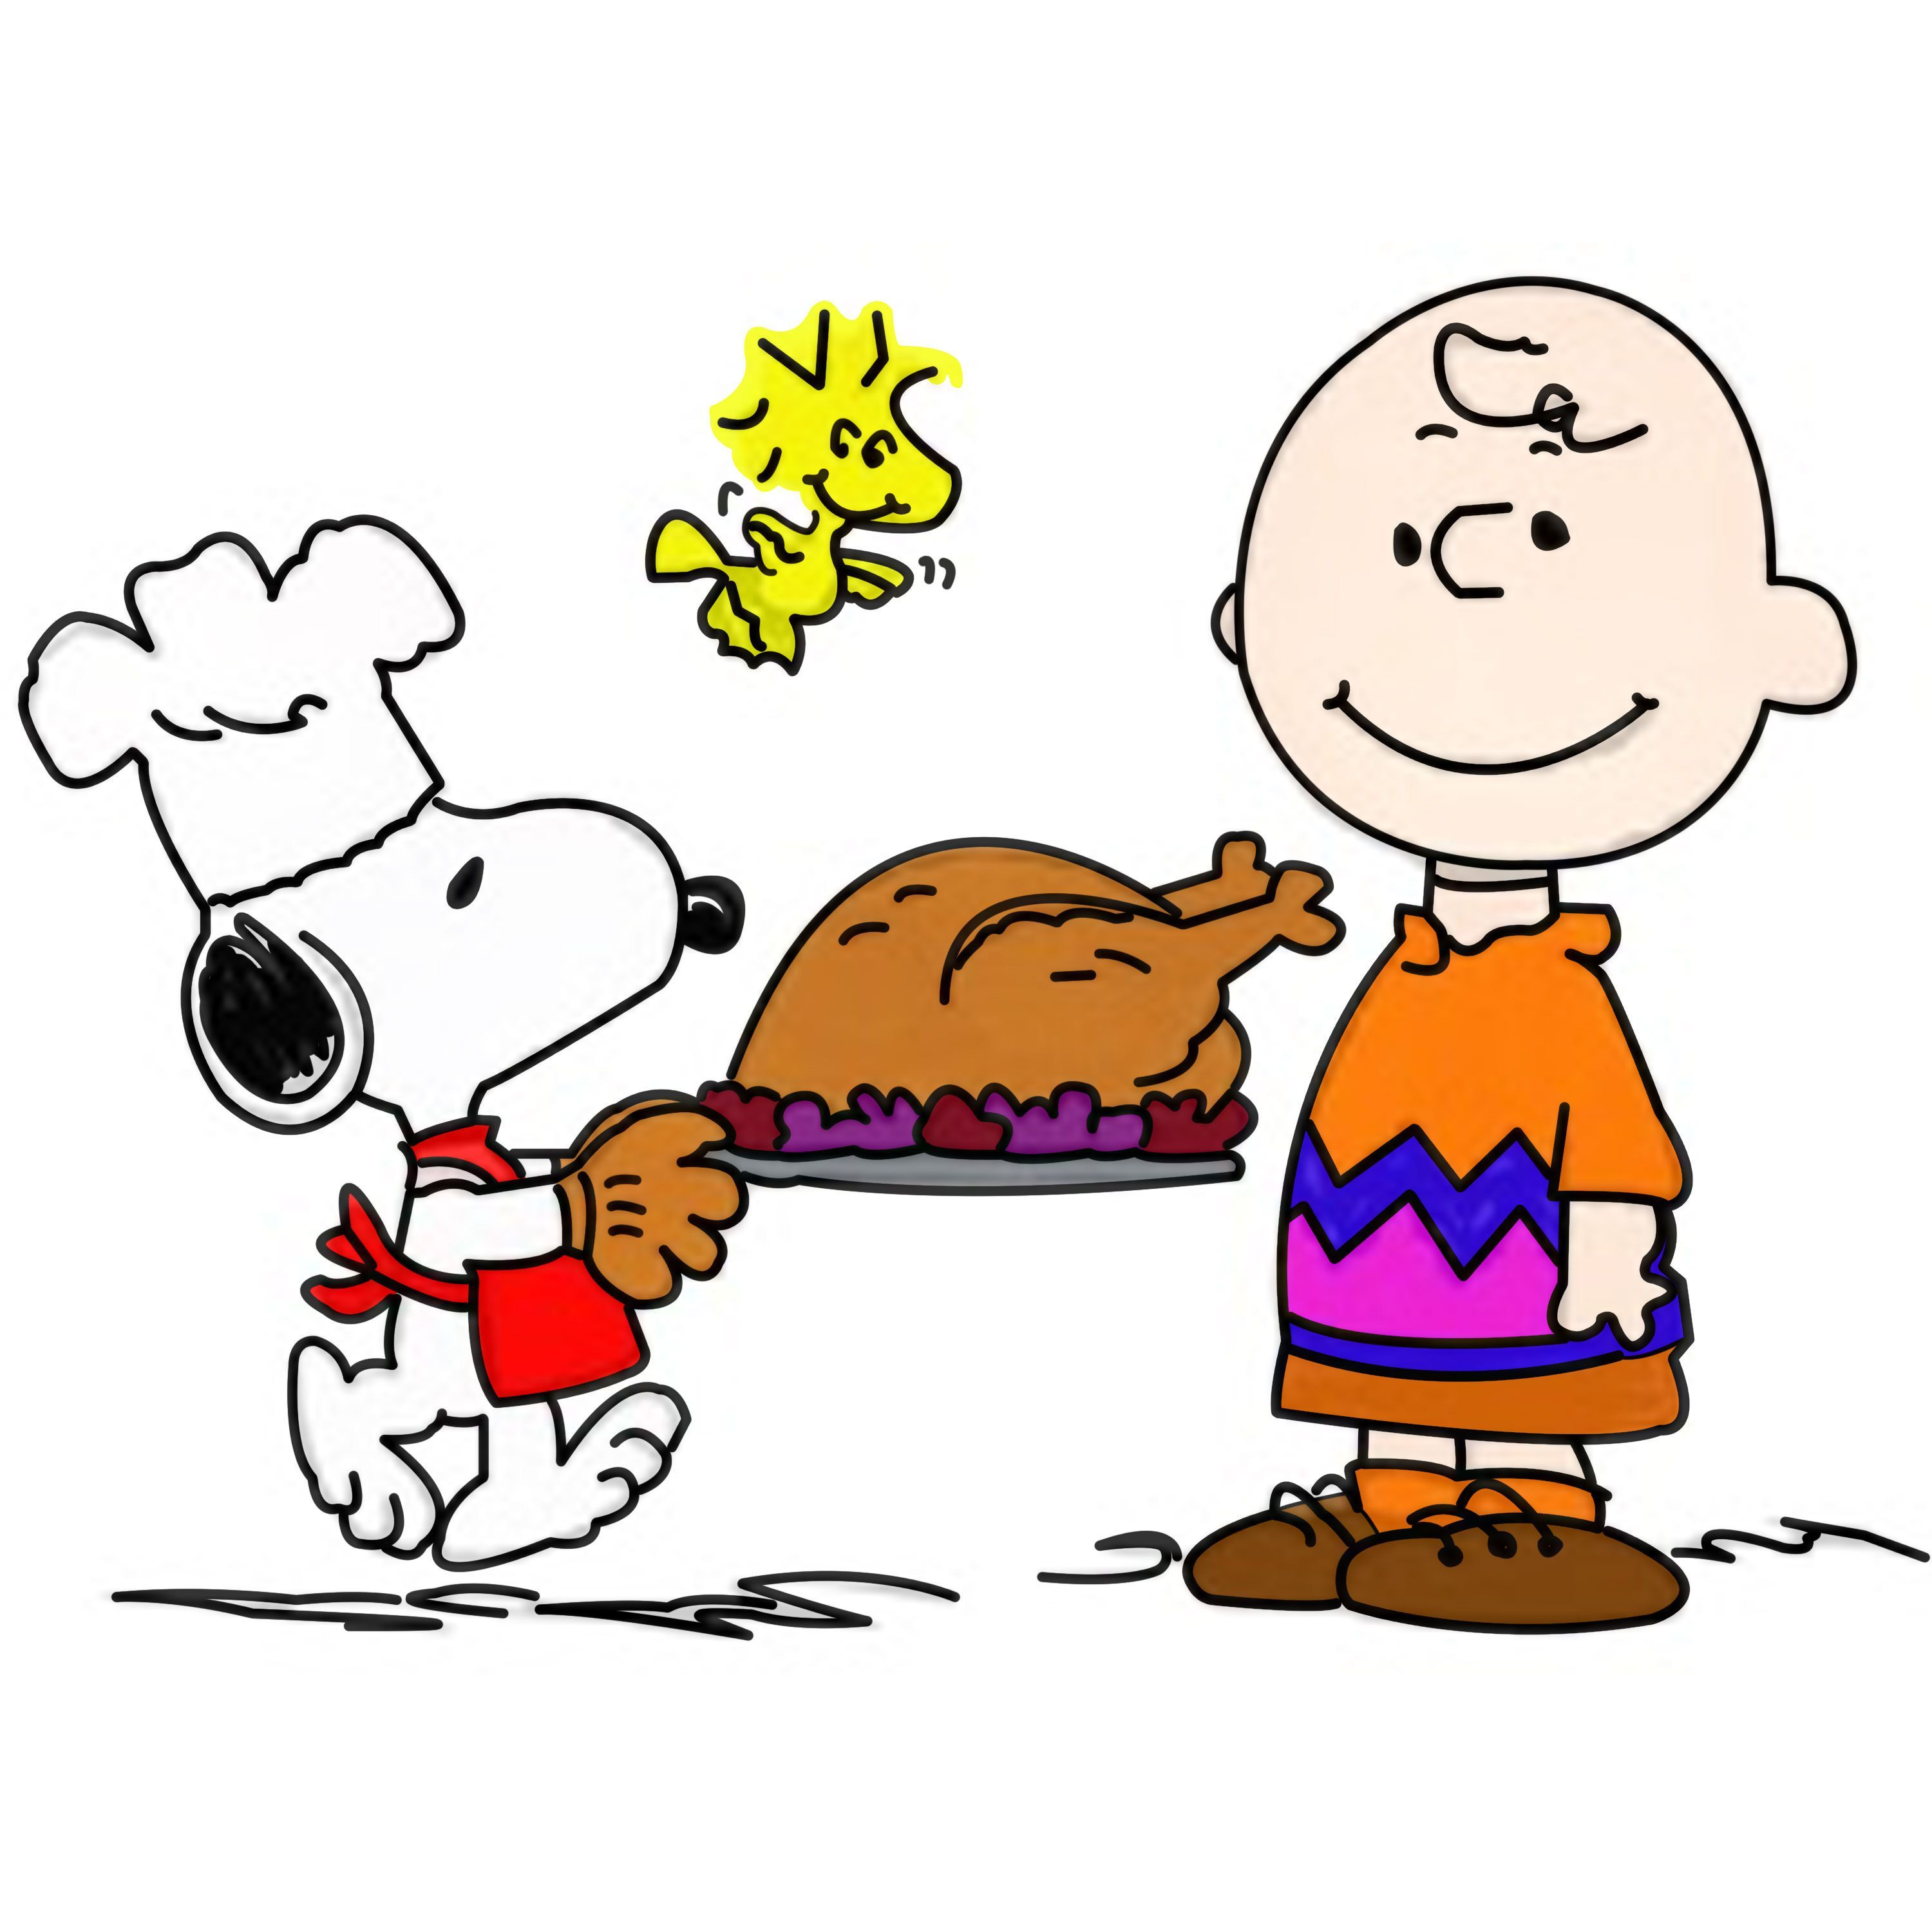 Charlie Brown Thanksgiving Images Happy Thanksgiving Pics Brown Charlie C In 2020 Happy Thanksgiving Pictures Thanksgiving Images Charlie Brown Thanksgiving